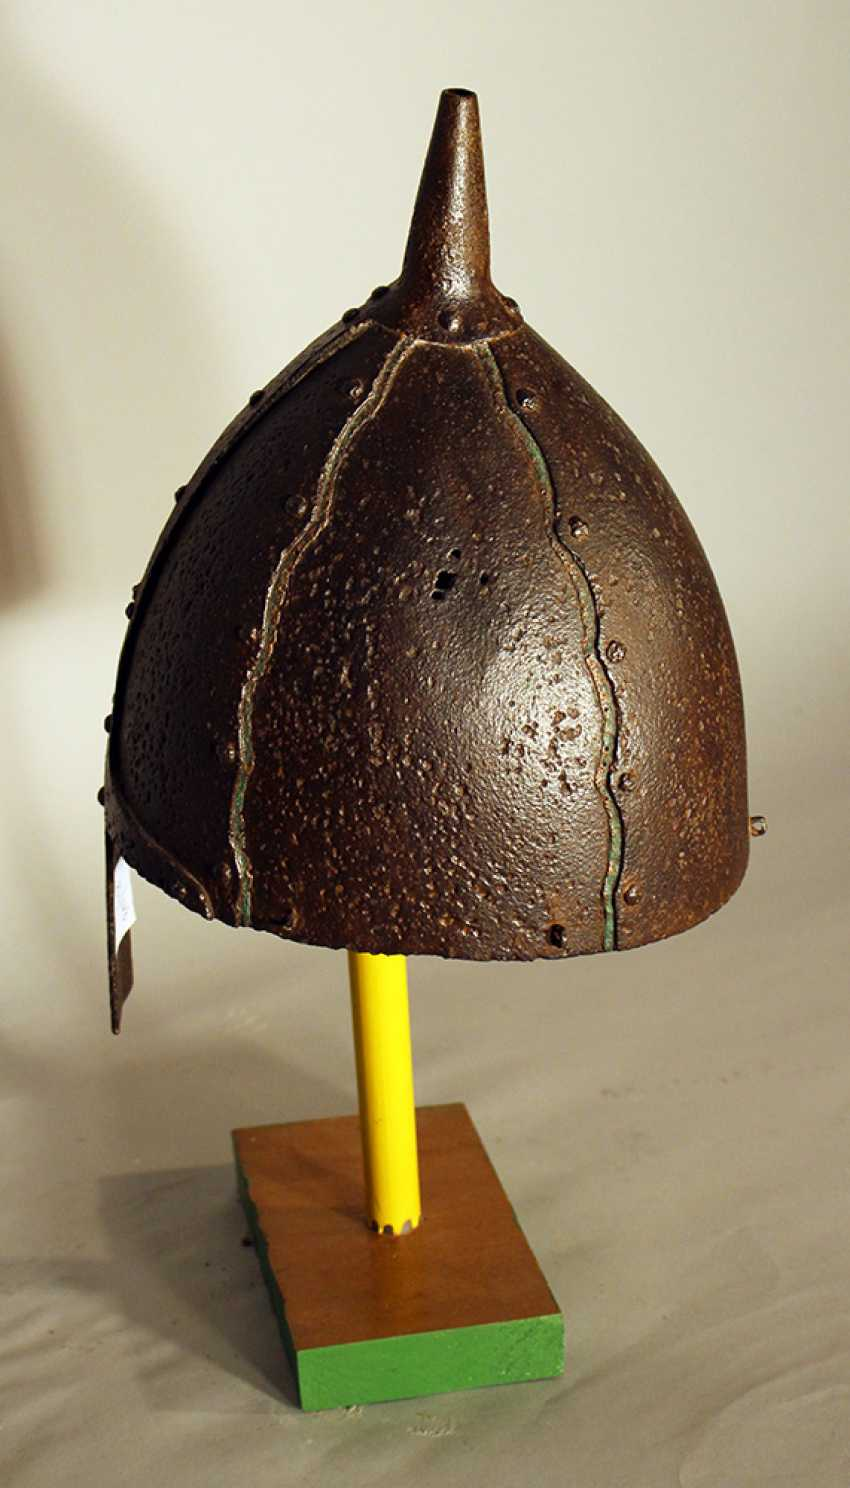 Ottoman warrior's iron helmet, forged, with nose protection - photo 3